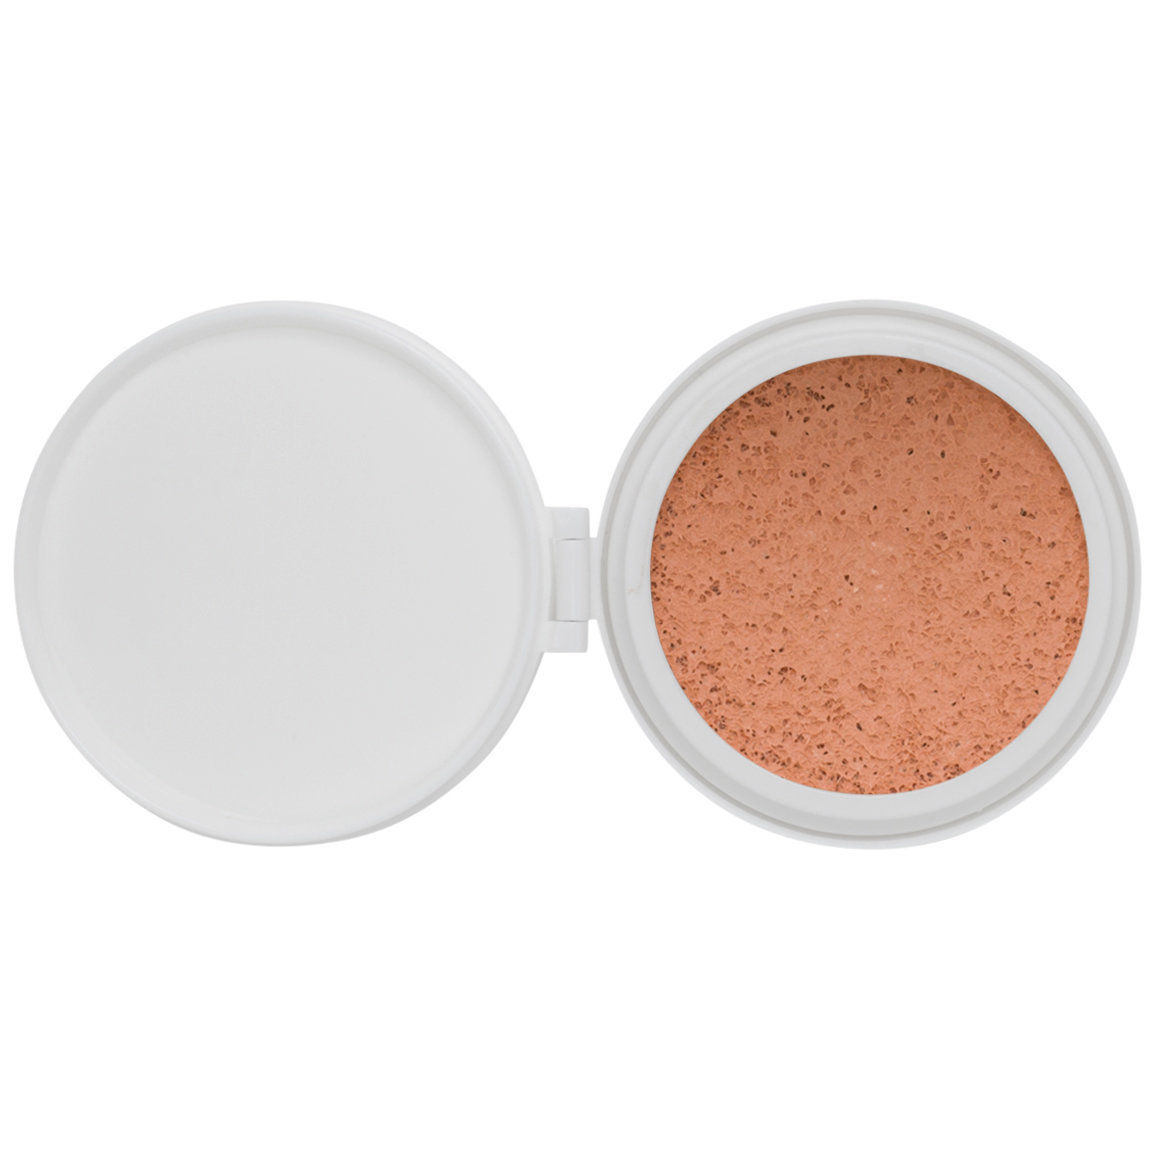 TOM FORD Soleil Glow Tone Up Foundation Hydrating Cushion Compact Refill 2 Pink Glow Tone Up product swatch.